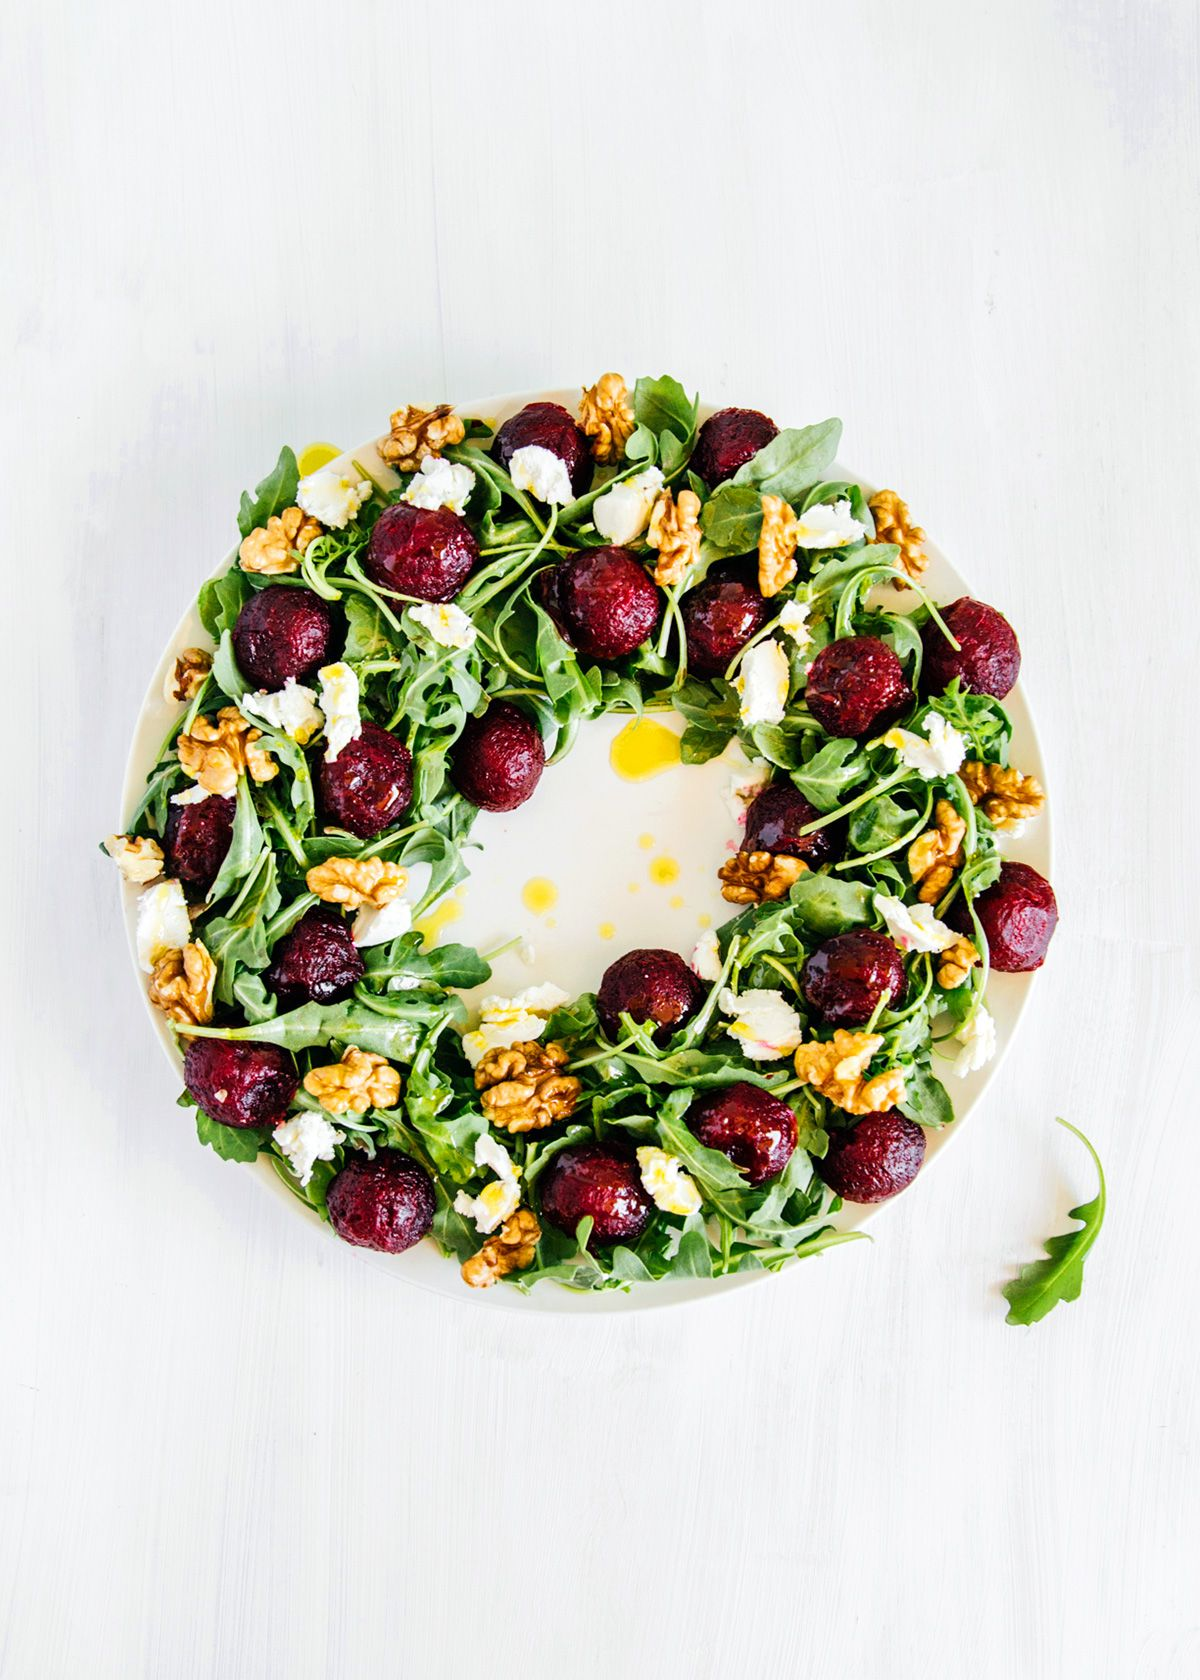 Oh My Christmas Wreath Salad Beet Goat Cheese Rocket And Walnut